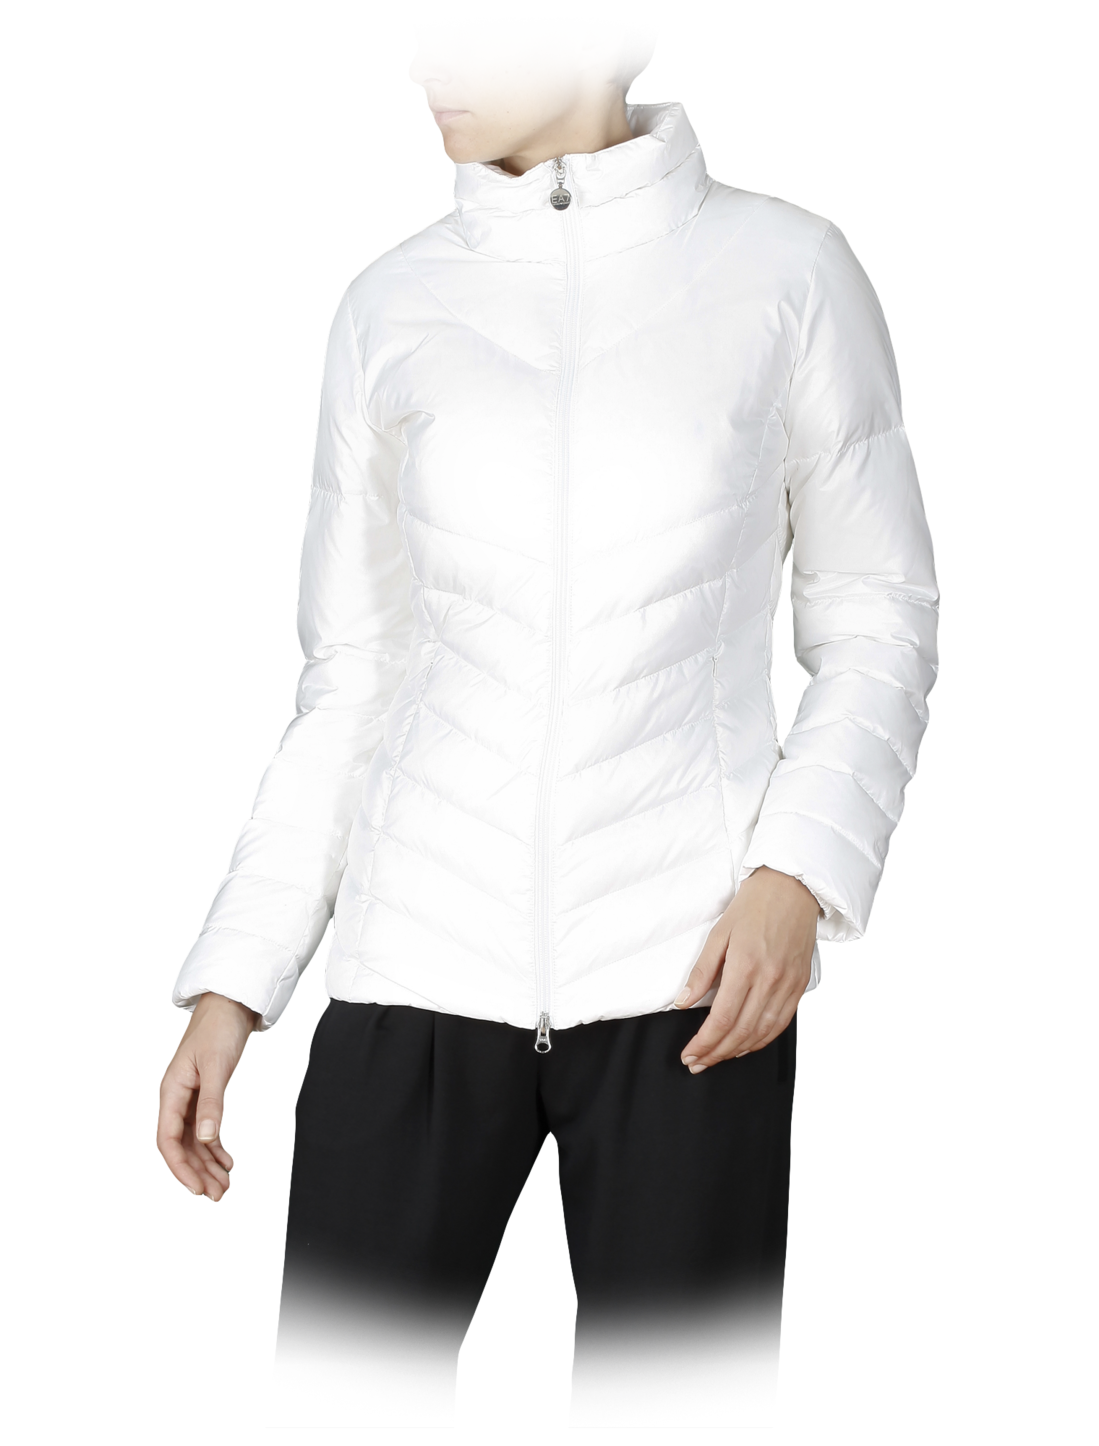 Emporio Armani Women s Padded Jacket from emporioarmani.com